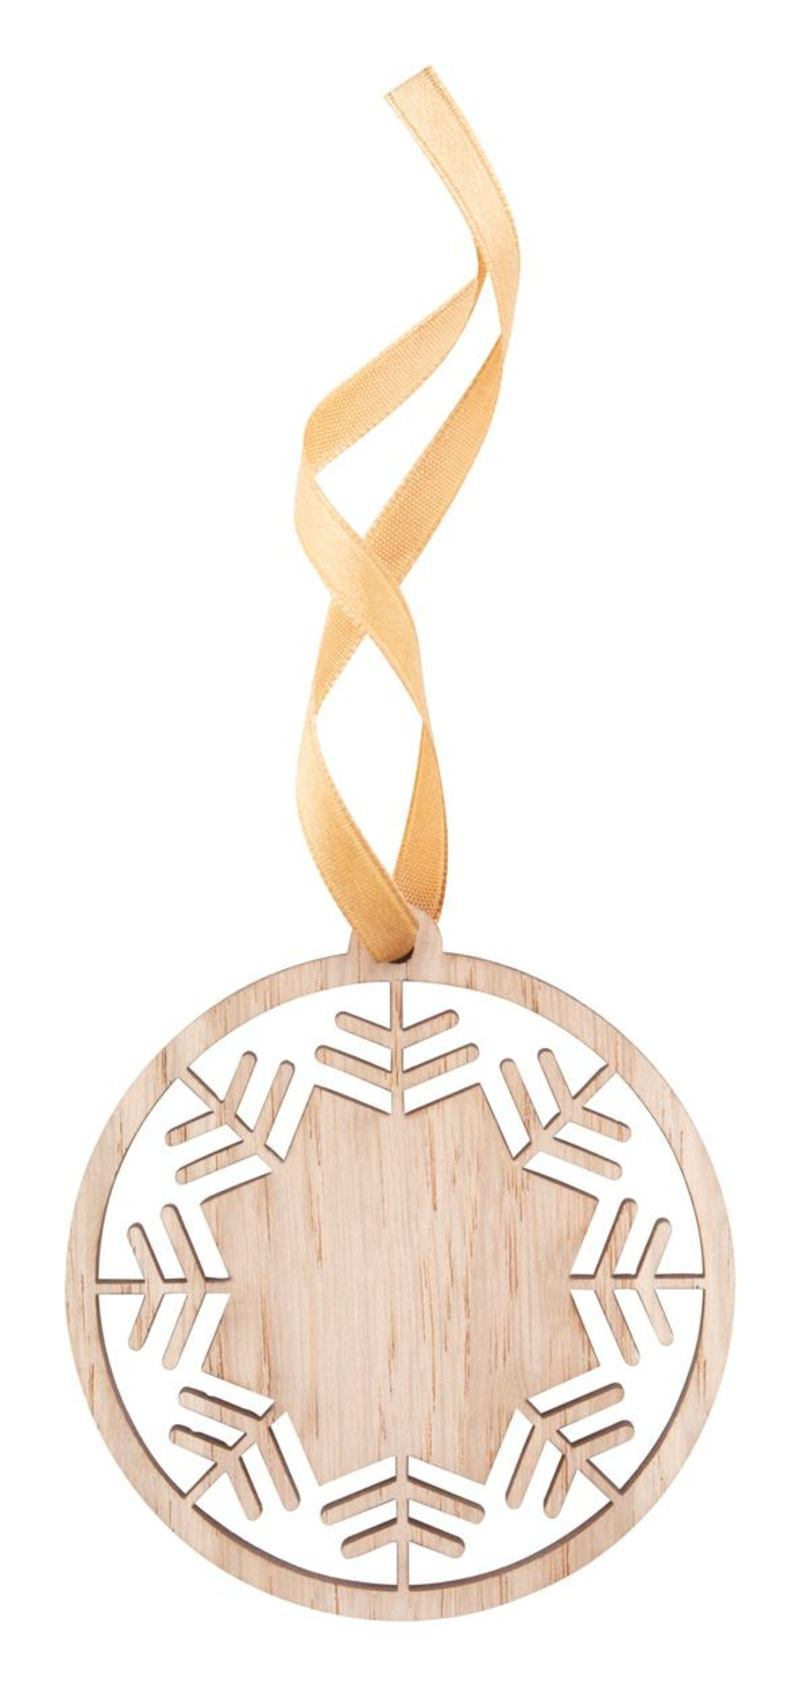 Lundamo Christmas tree ornament